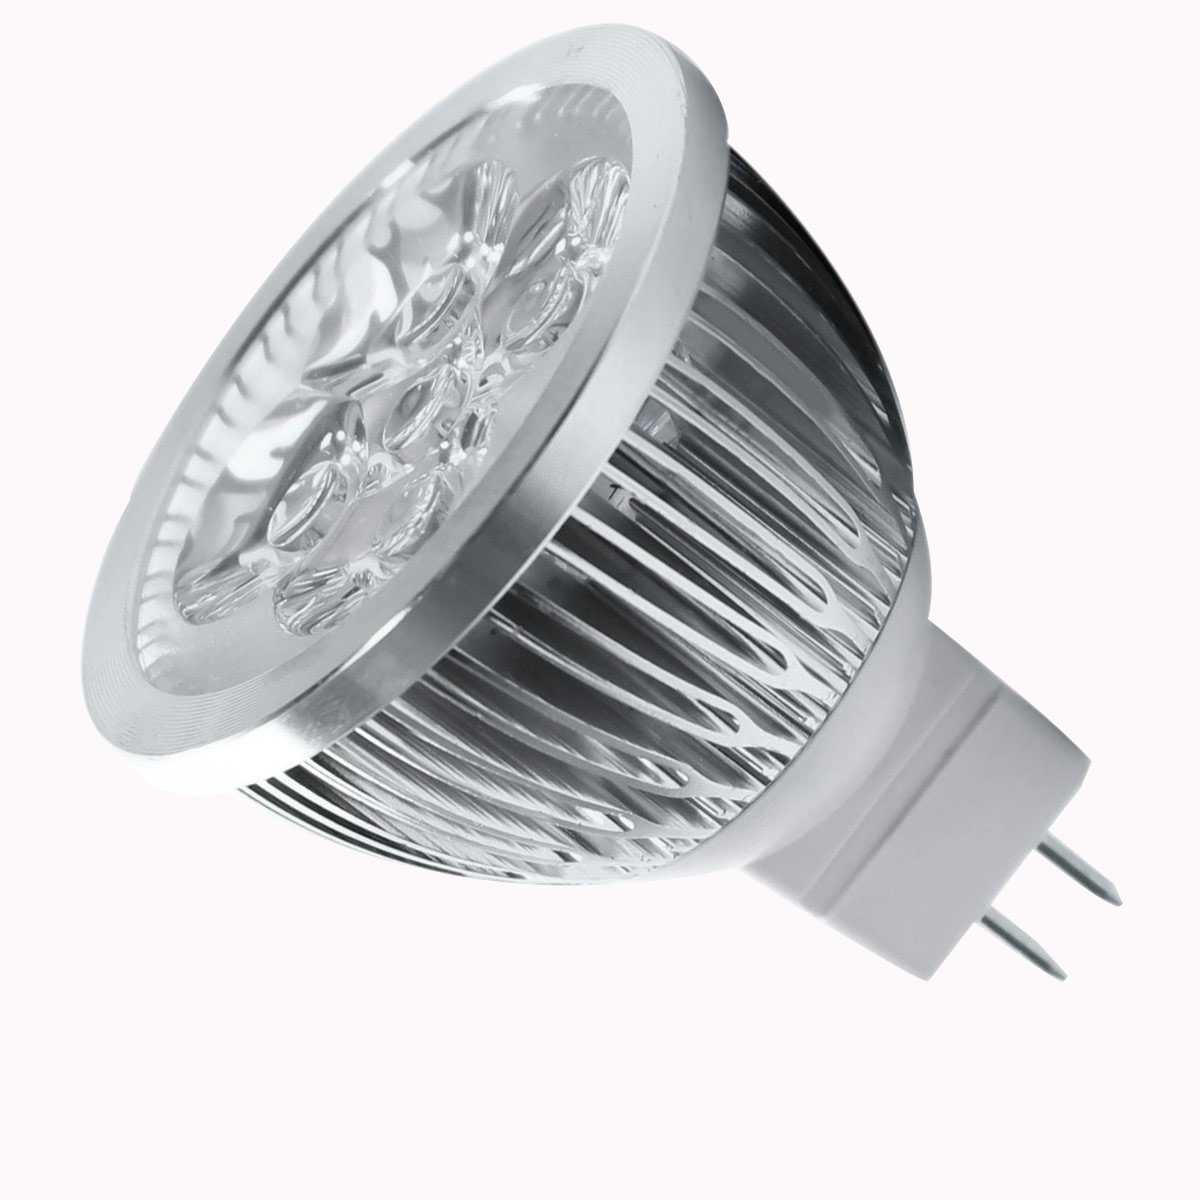 Led Spotlight Light Bulbs: LED Bulb Dimmable 4W DC 12V LED Cool Warm Nature White